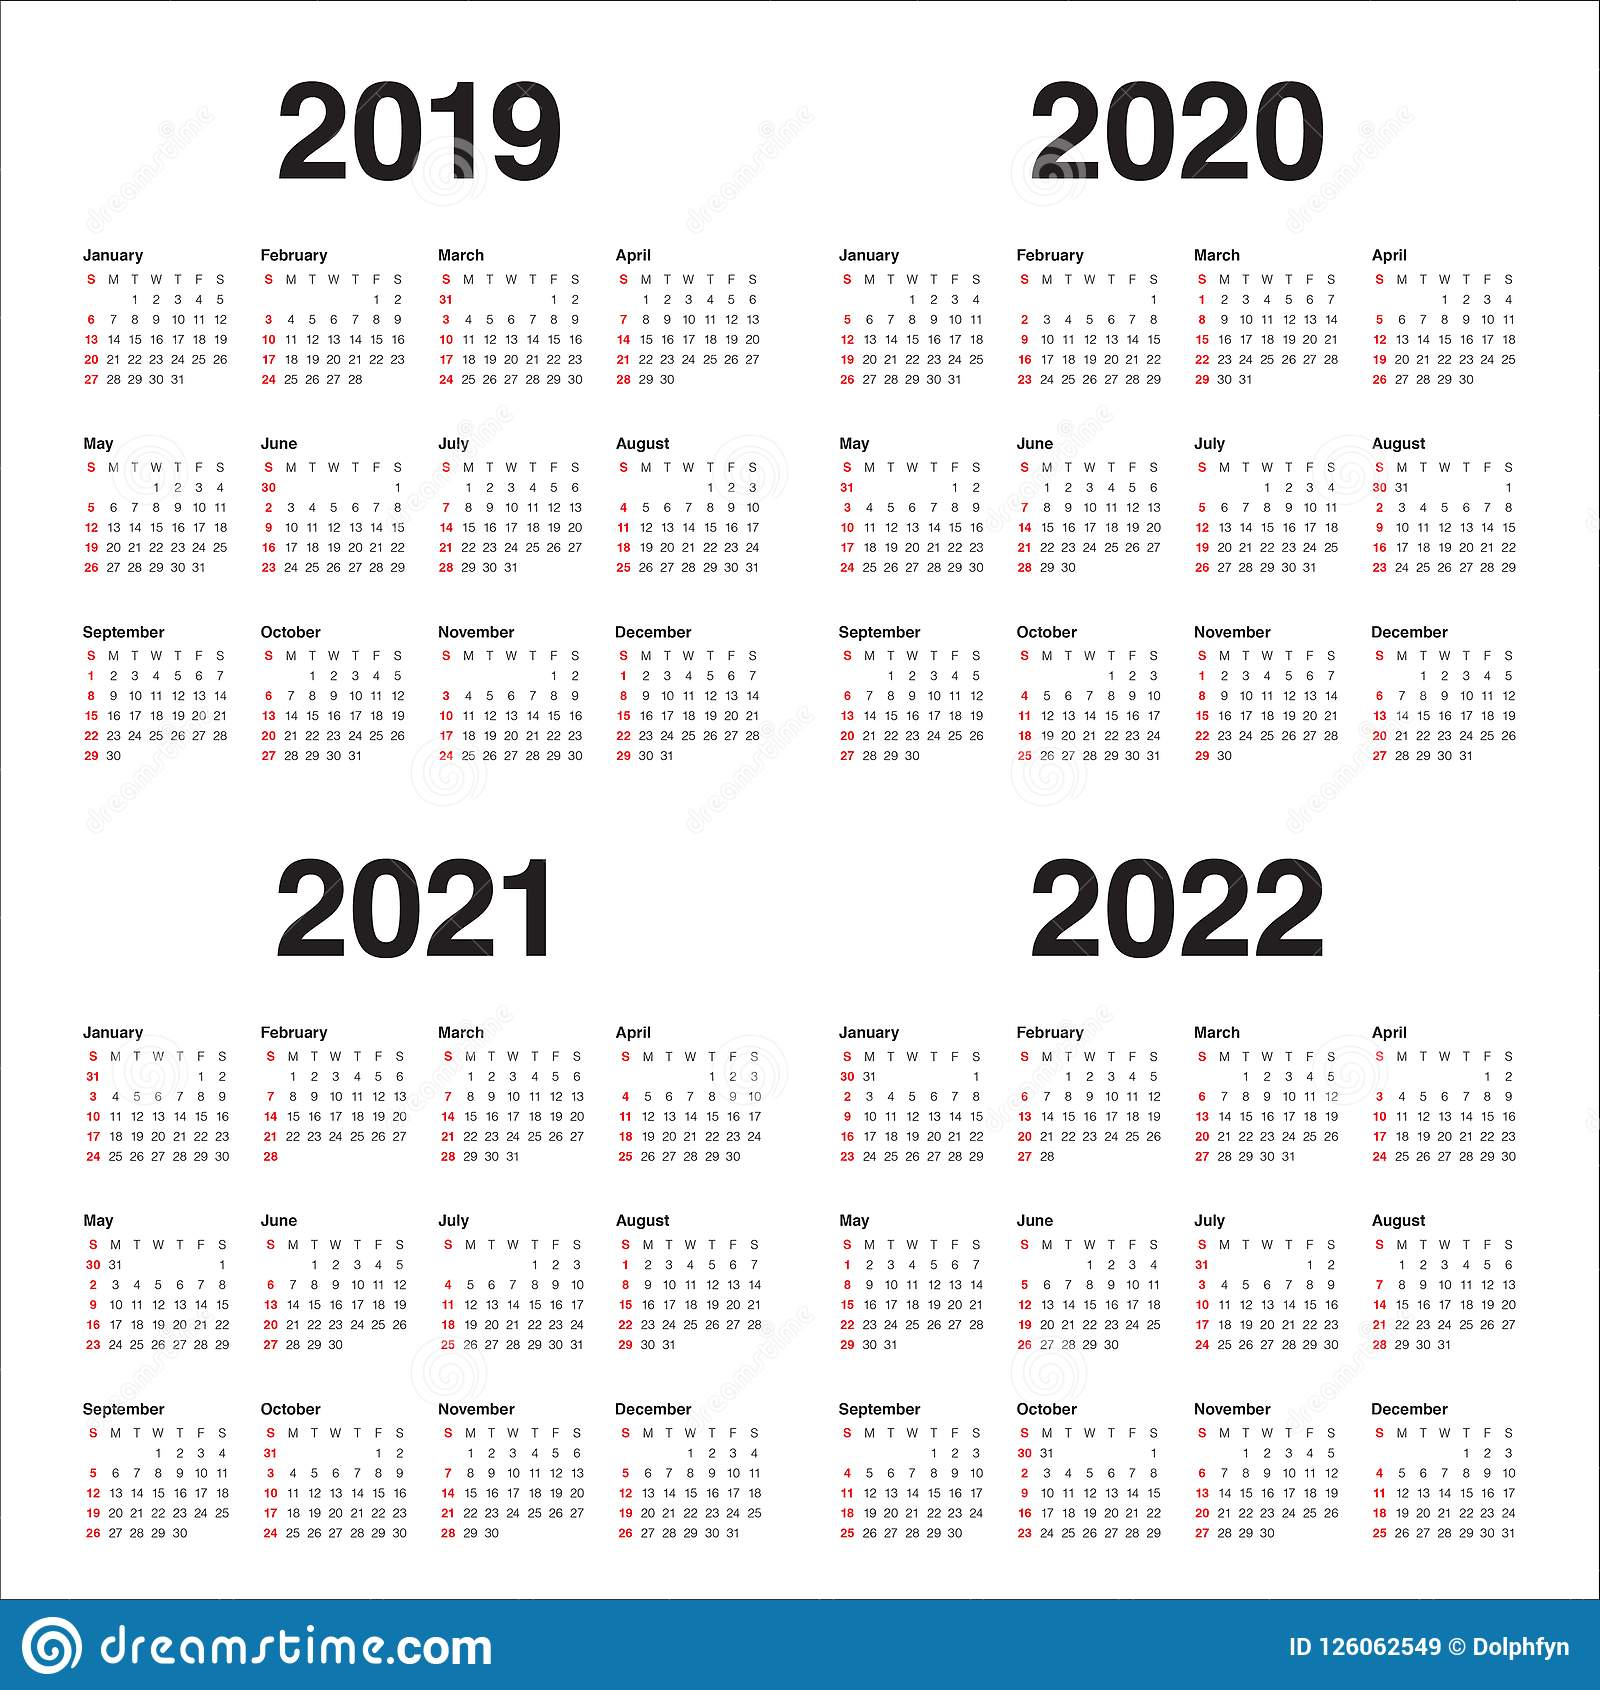 image about 2022 Calendar Printable named Yr 2019 2020 2021 2022 Calendar Vector Layout Template